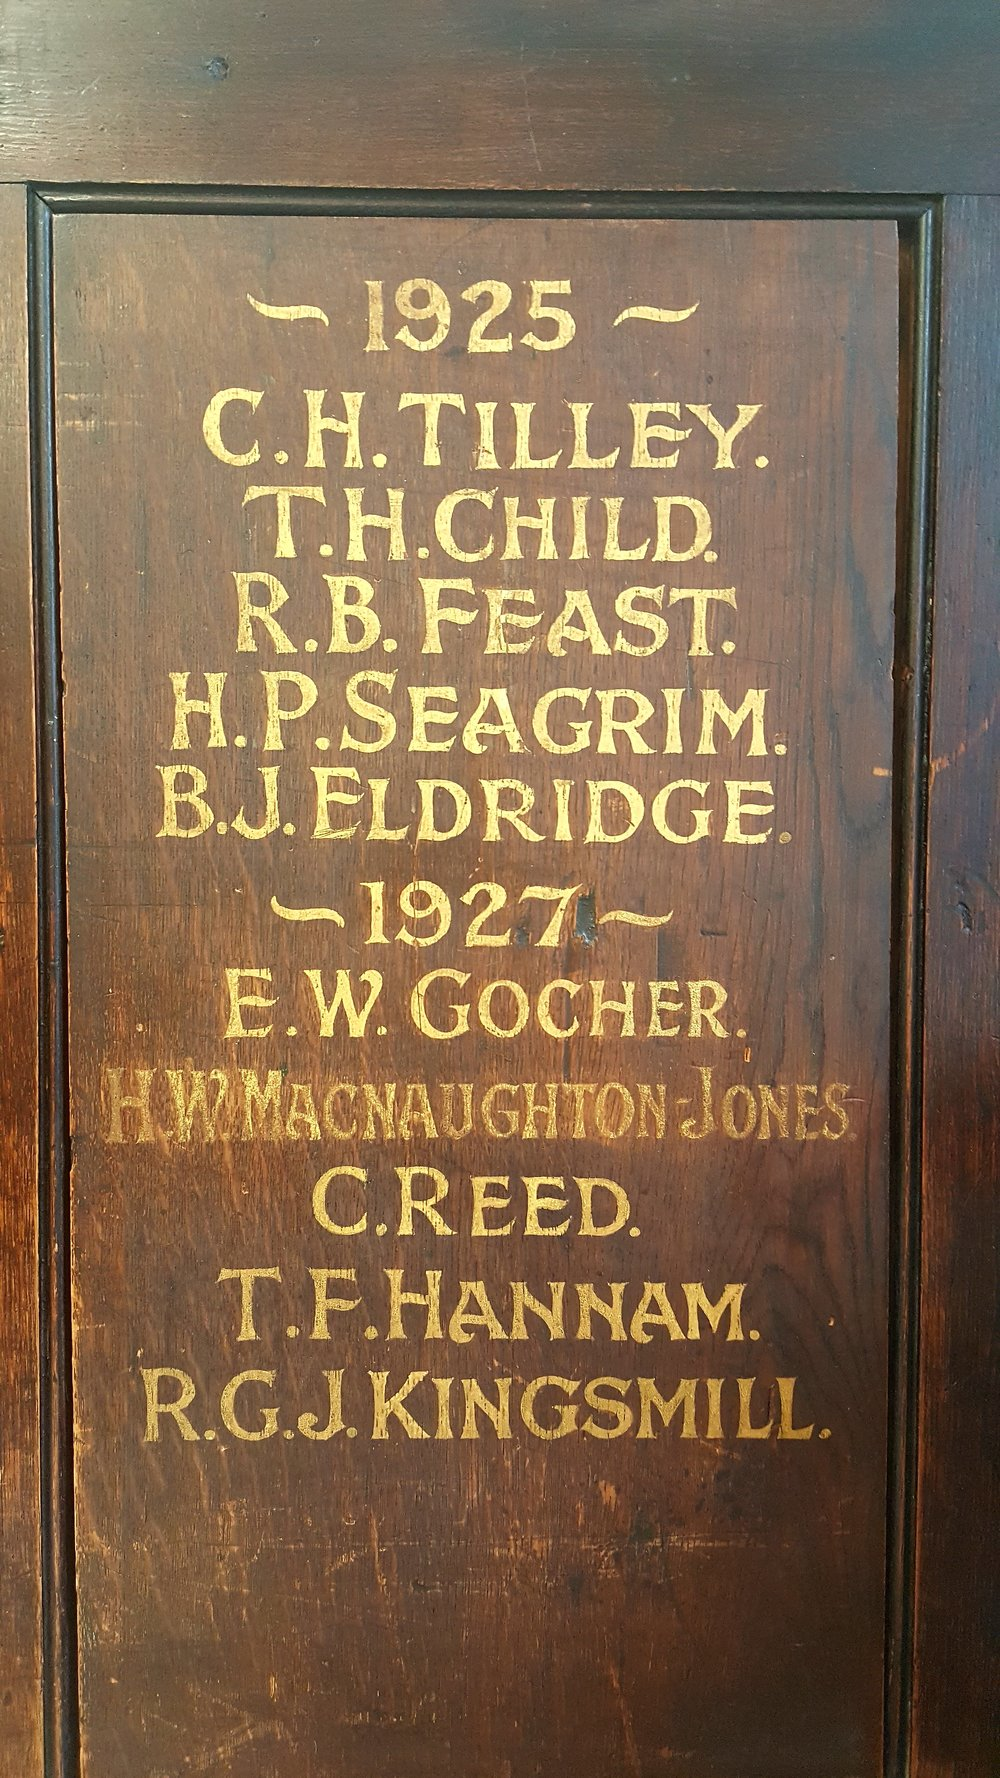 The 1925 prefect board standing in School House